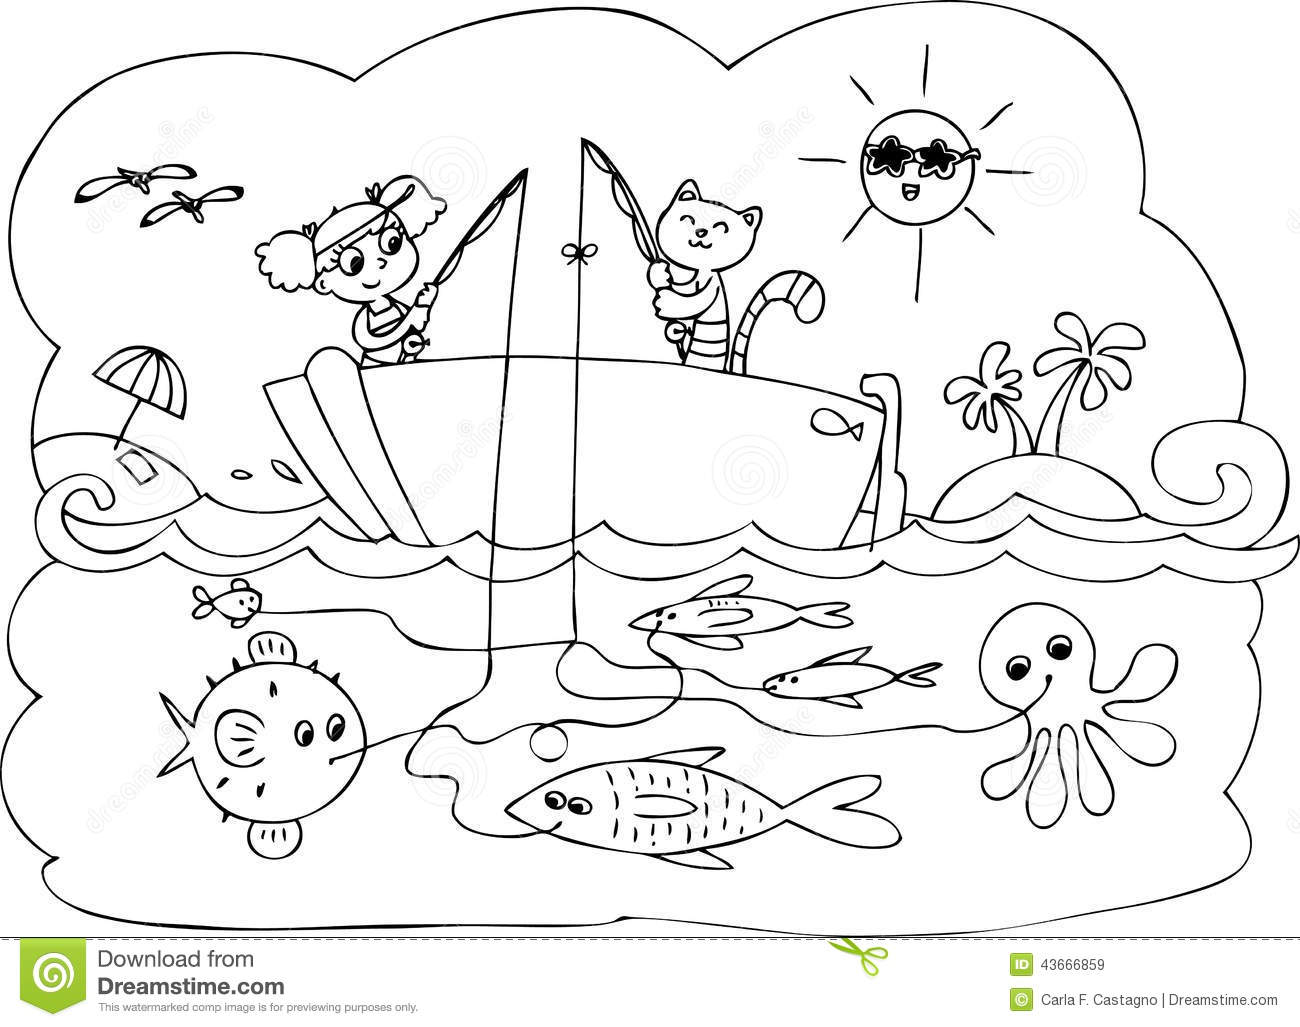 Fish boat game vector stock vector. Illustration of animal ...